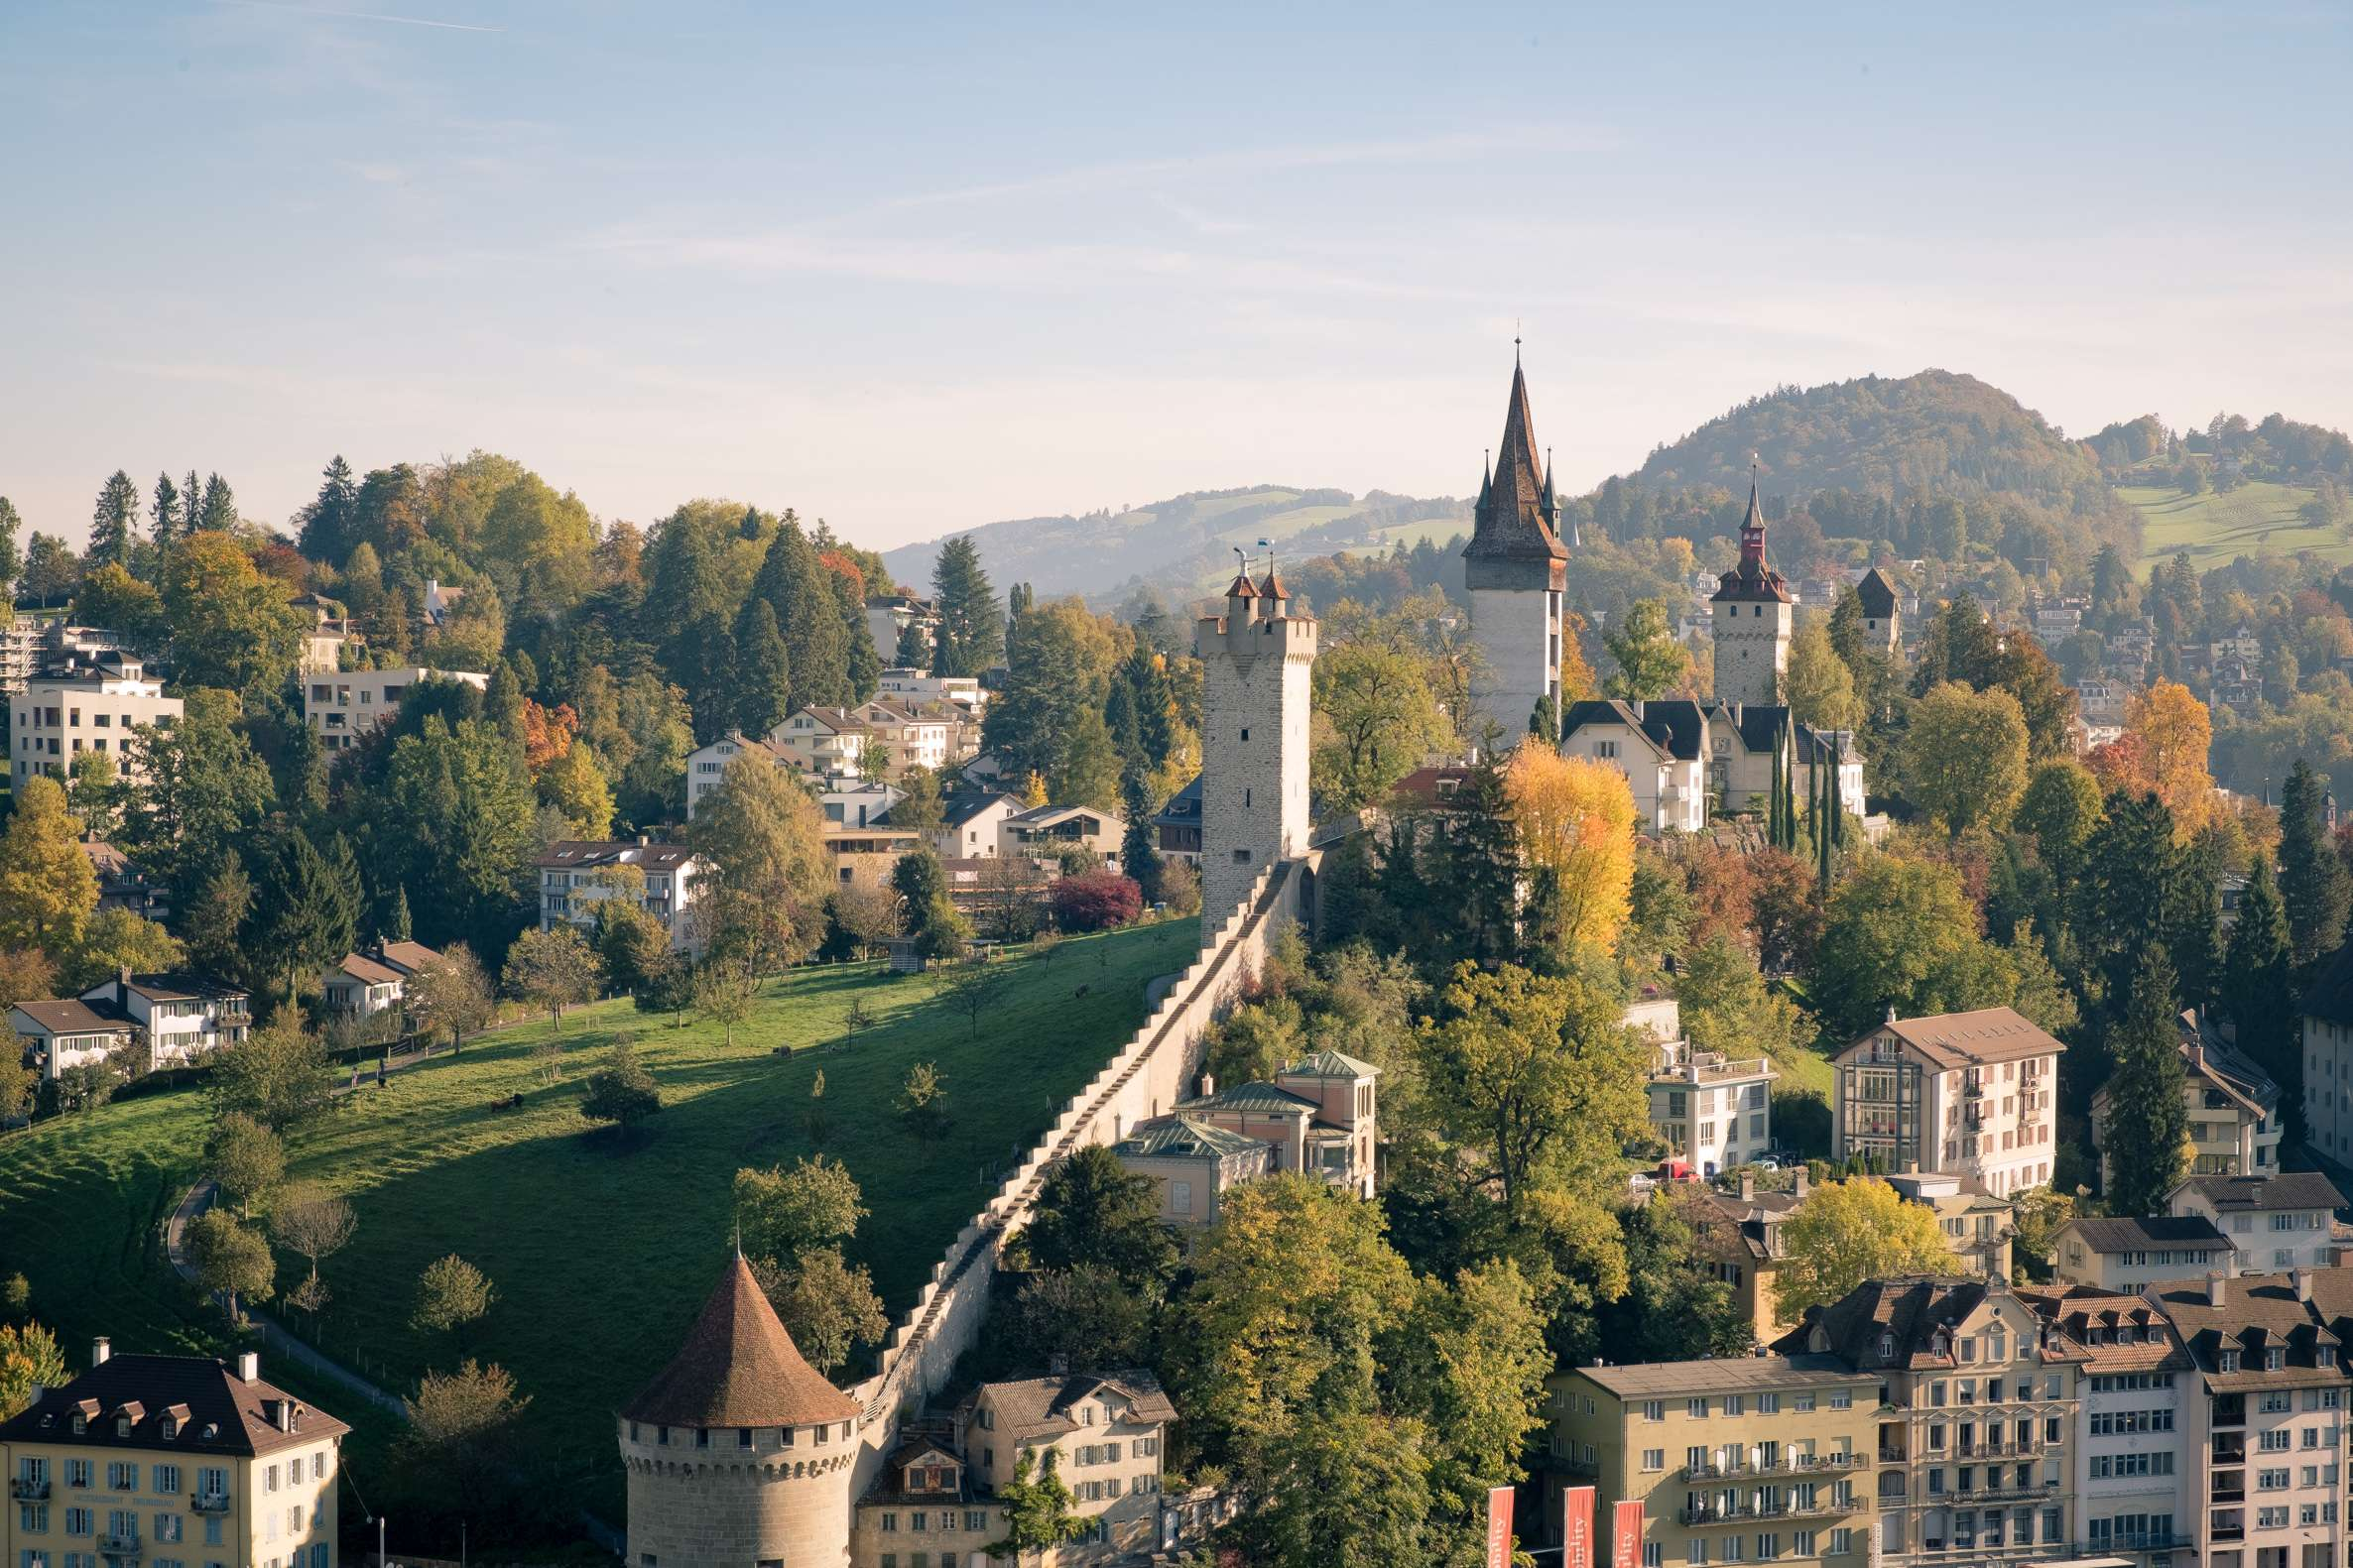 Looking over Lucerne castle in the morning